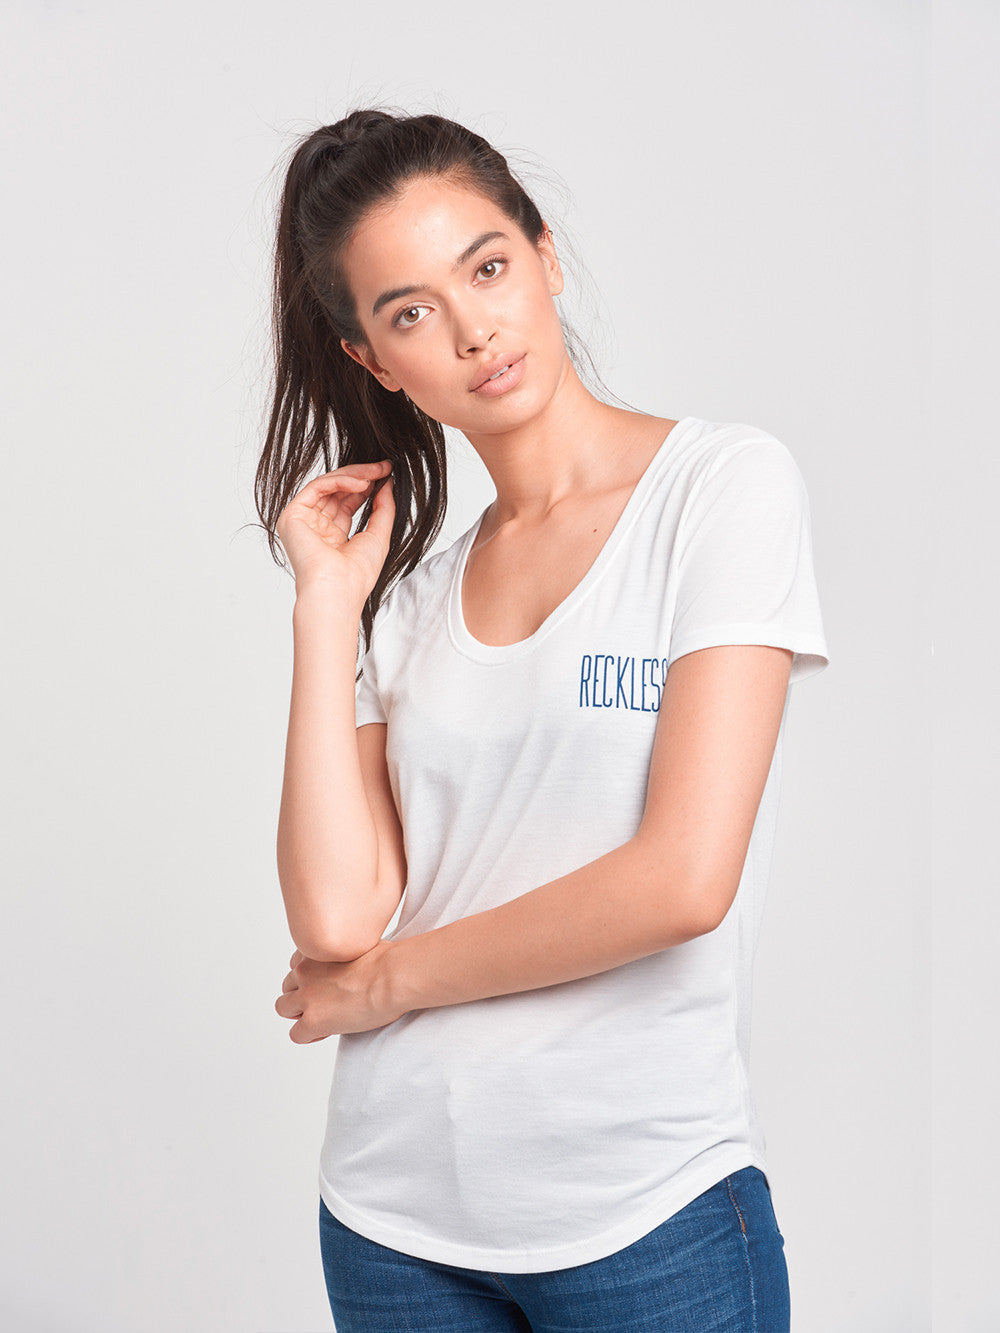 Reckless Girls Womens - Tops - Tees Stand Tall Scoop Neck Tee- White